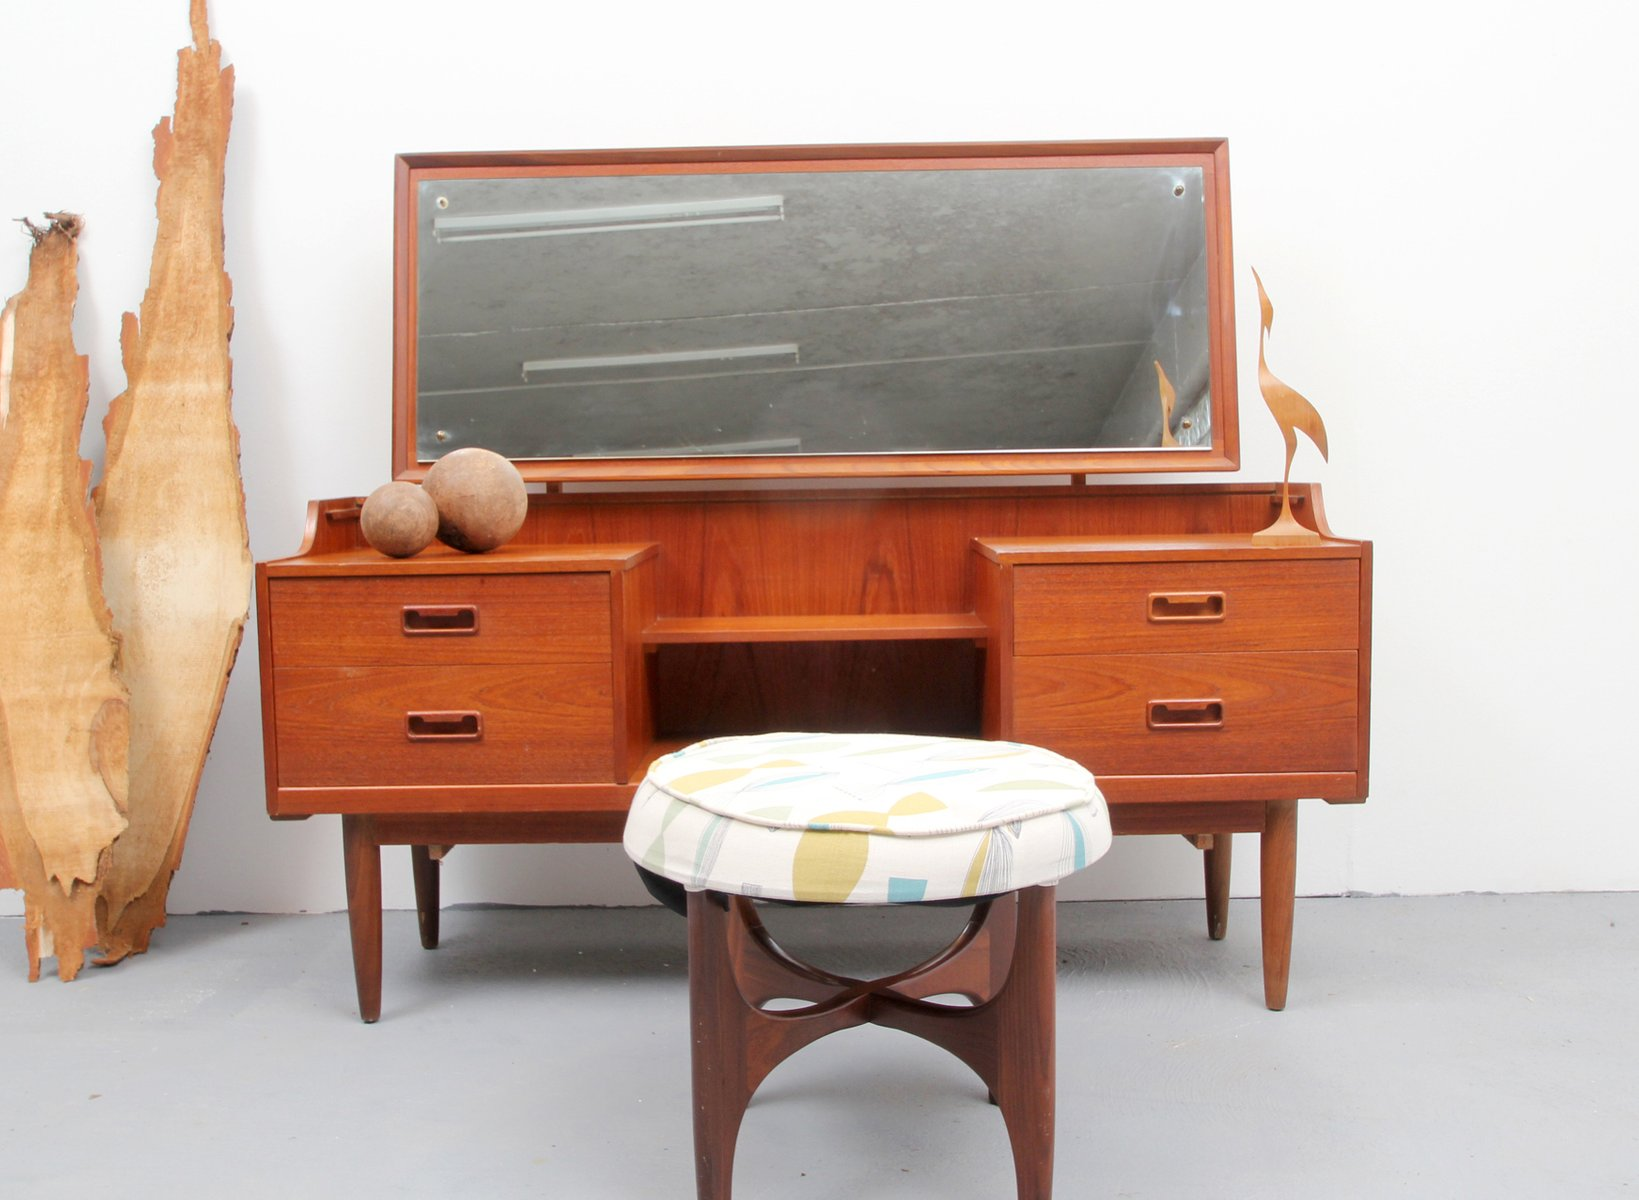 Mid century teak dressing table s for sale at pamono